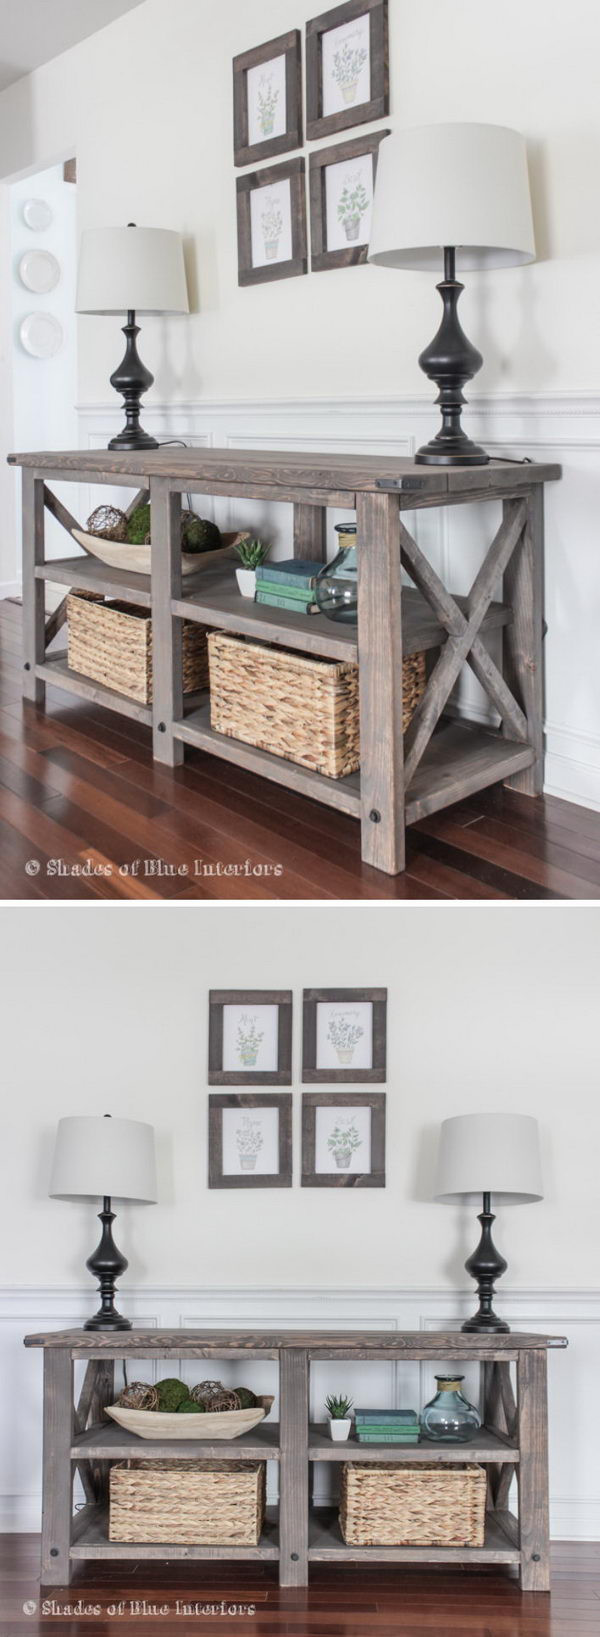 Best ideas about DIY D&D Table . Save or Pin 20 Easy DIY Console Table and Sofa Table Ideas Hative Now.